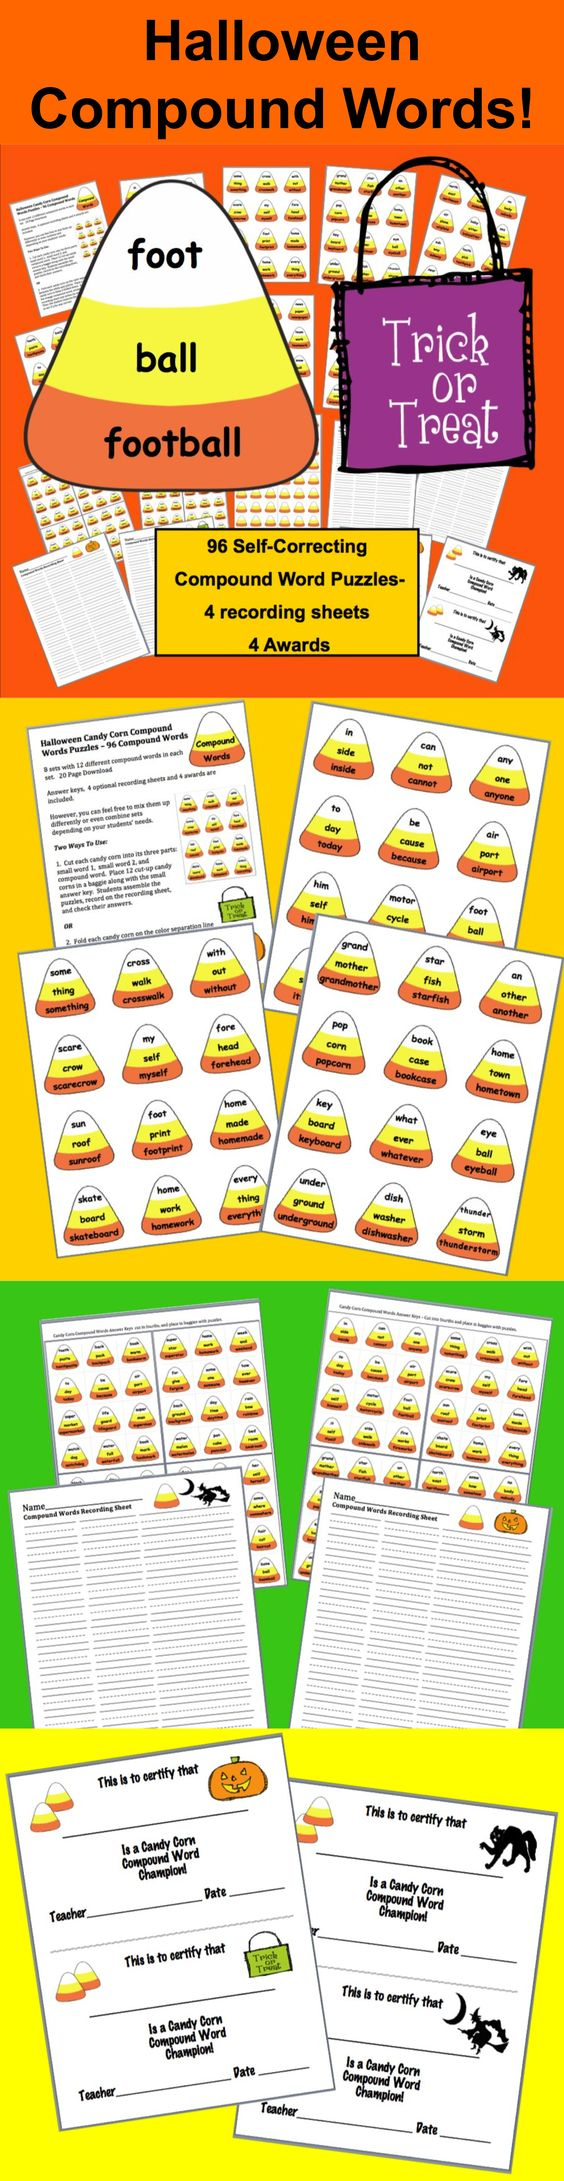 Worksheet Compound Words With Self halloween candy corn compound words puzzles 96 3 00 self correcting